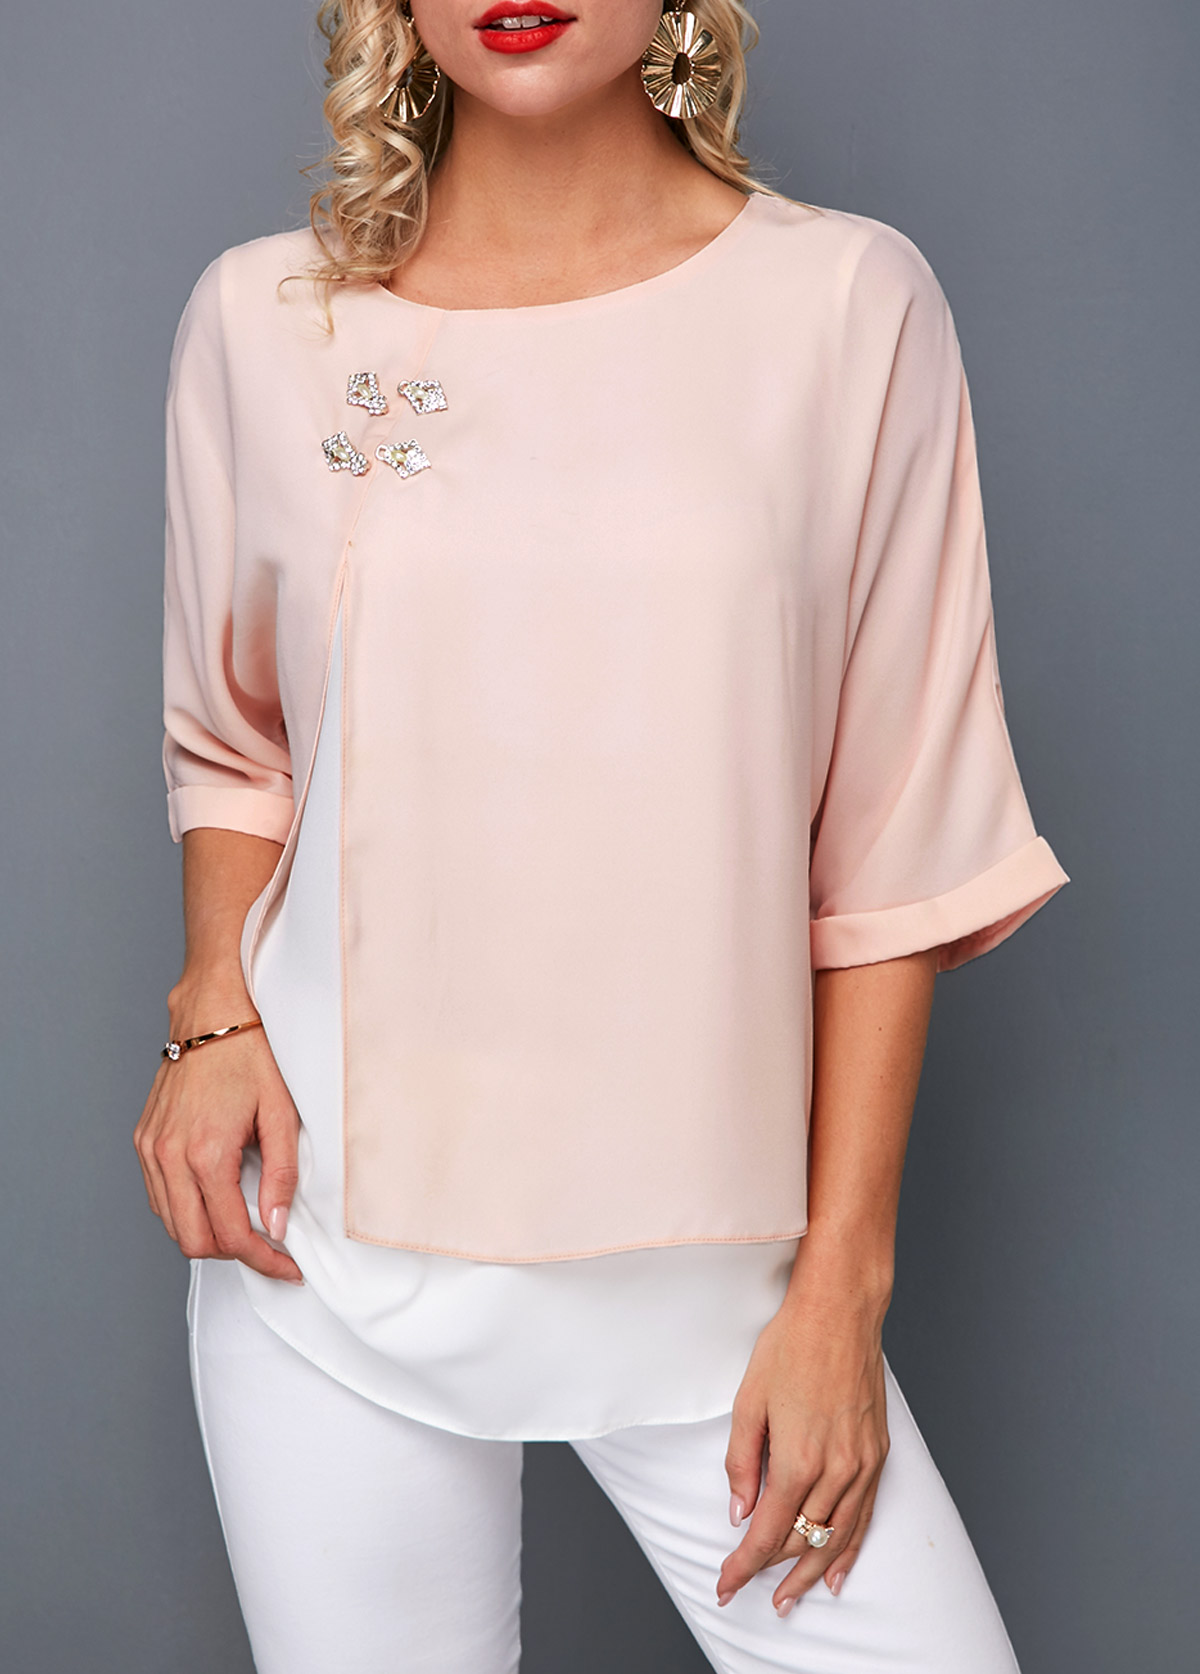 Layered Round Neck Light Pink T Shirt